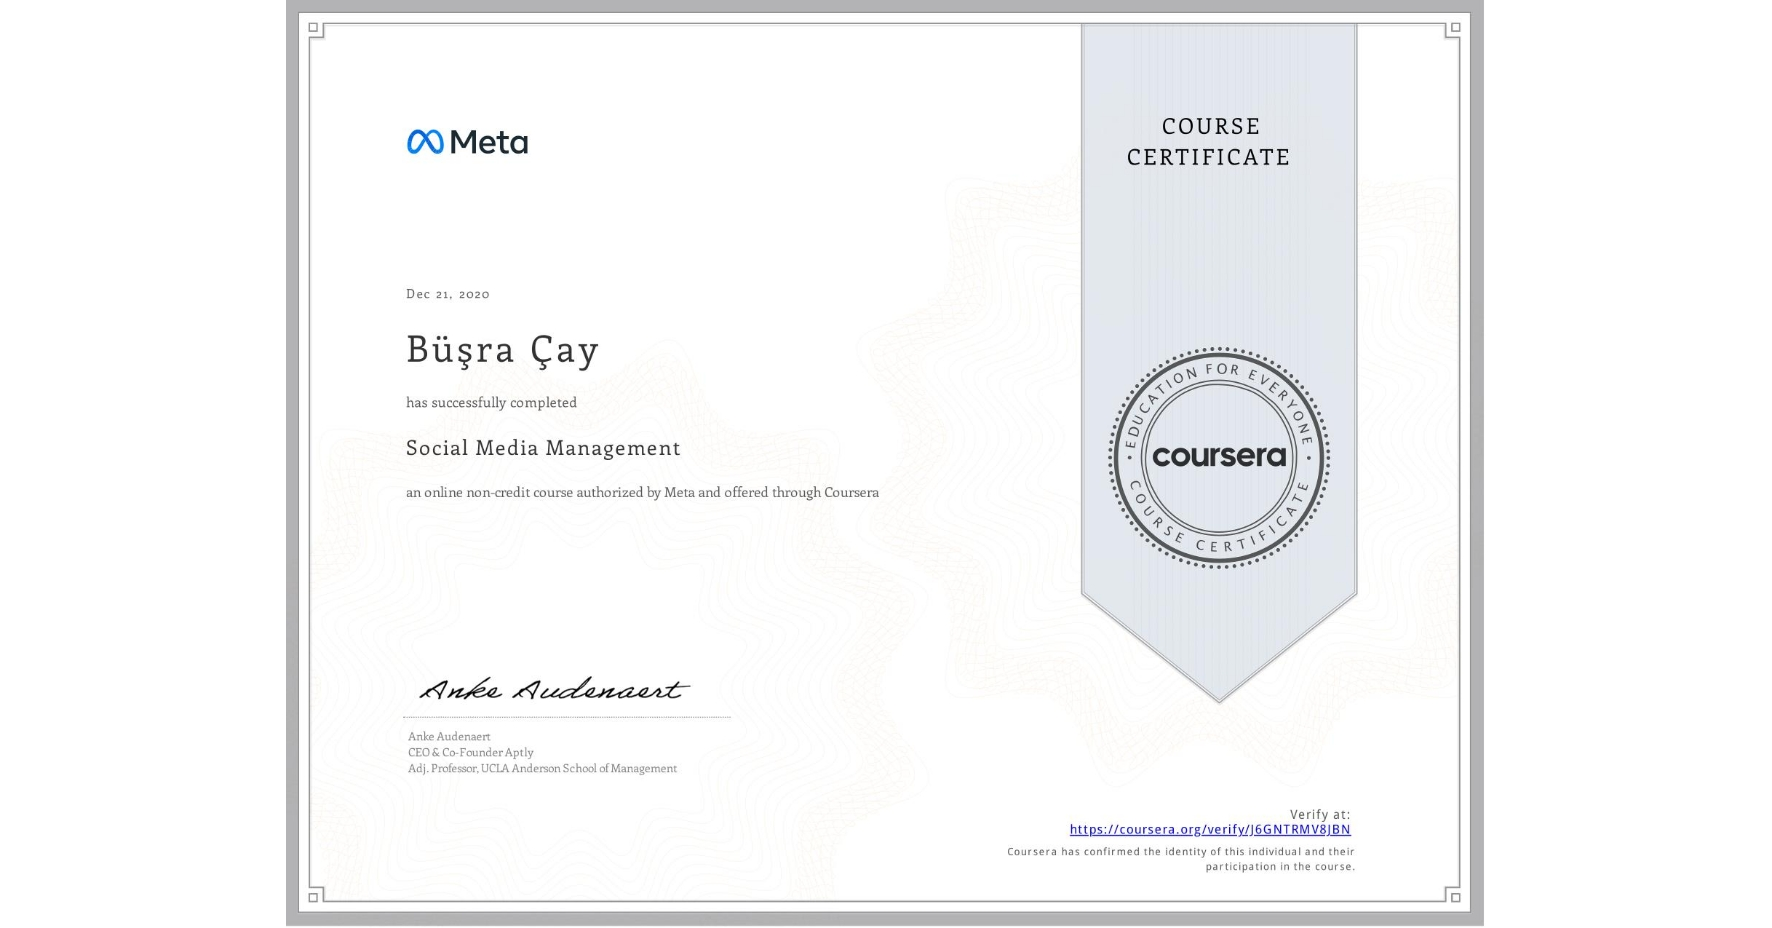 View certificate for Büşra Çay, Social Media Management , an online non-credit course authorized by Facebook and offered through Coursera